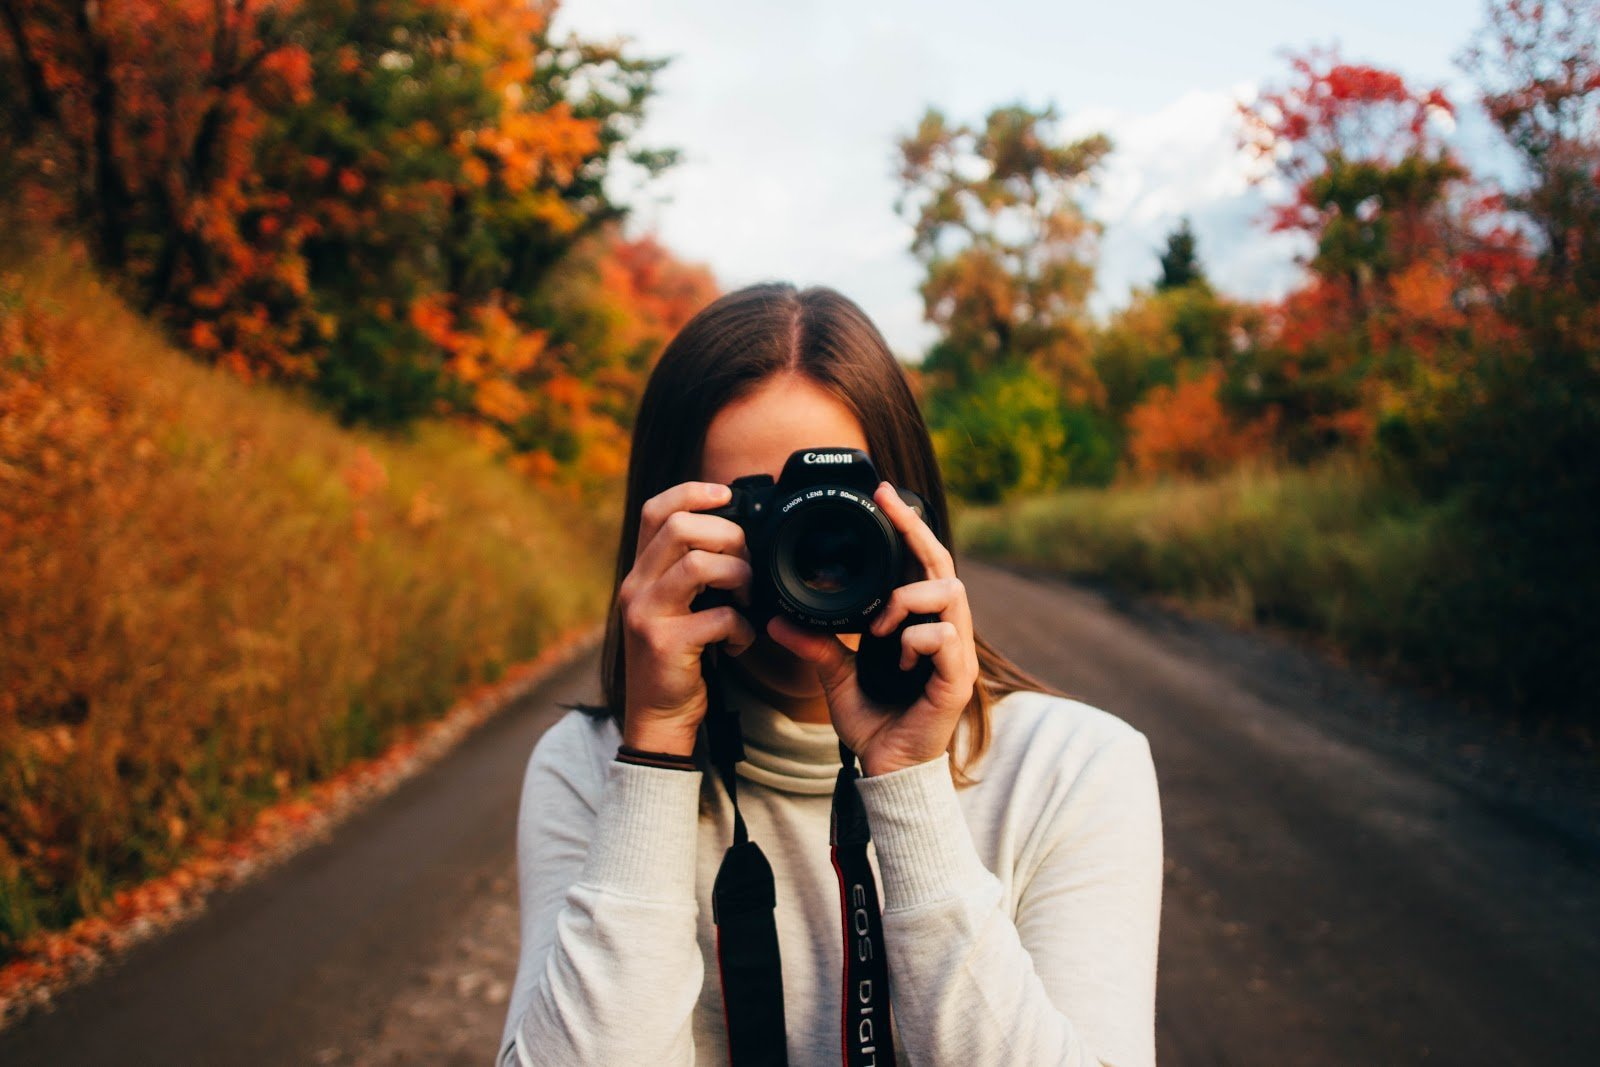 10 inspiring 'Project 365' ideas: Take a photo a day to keep the creative block away